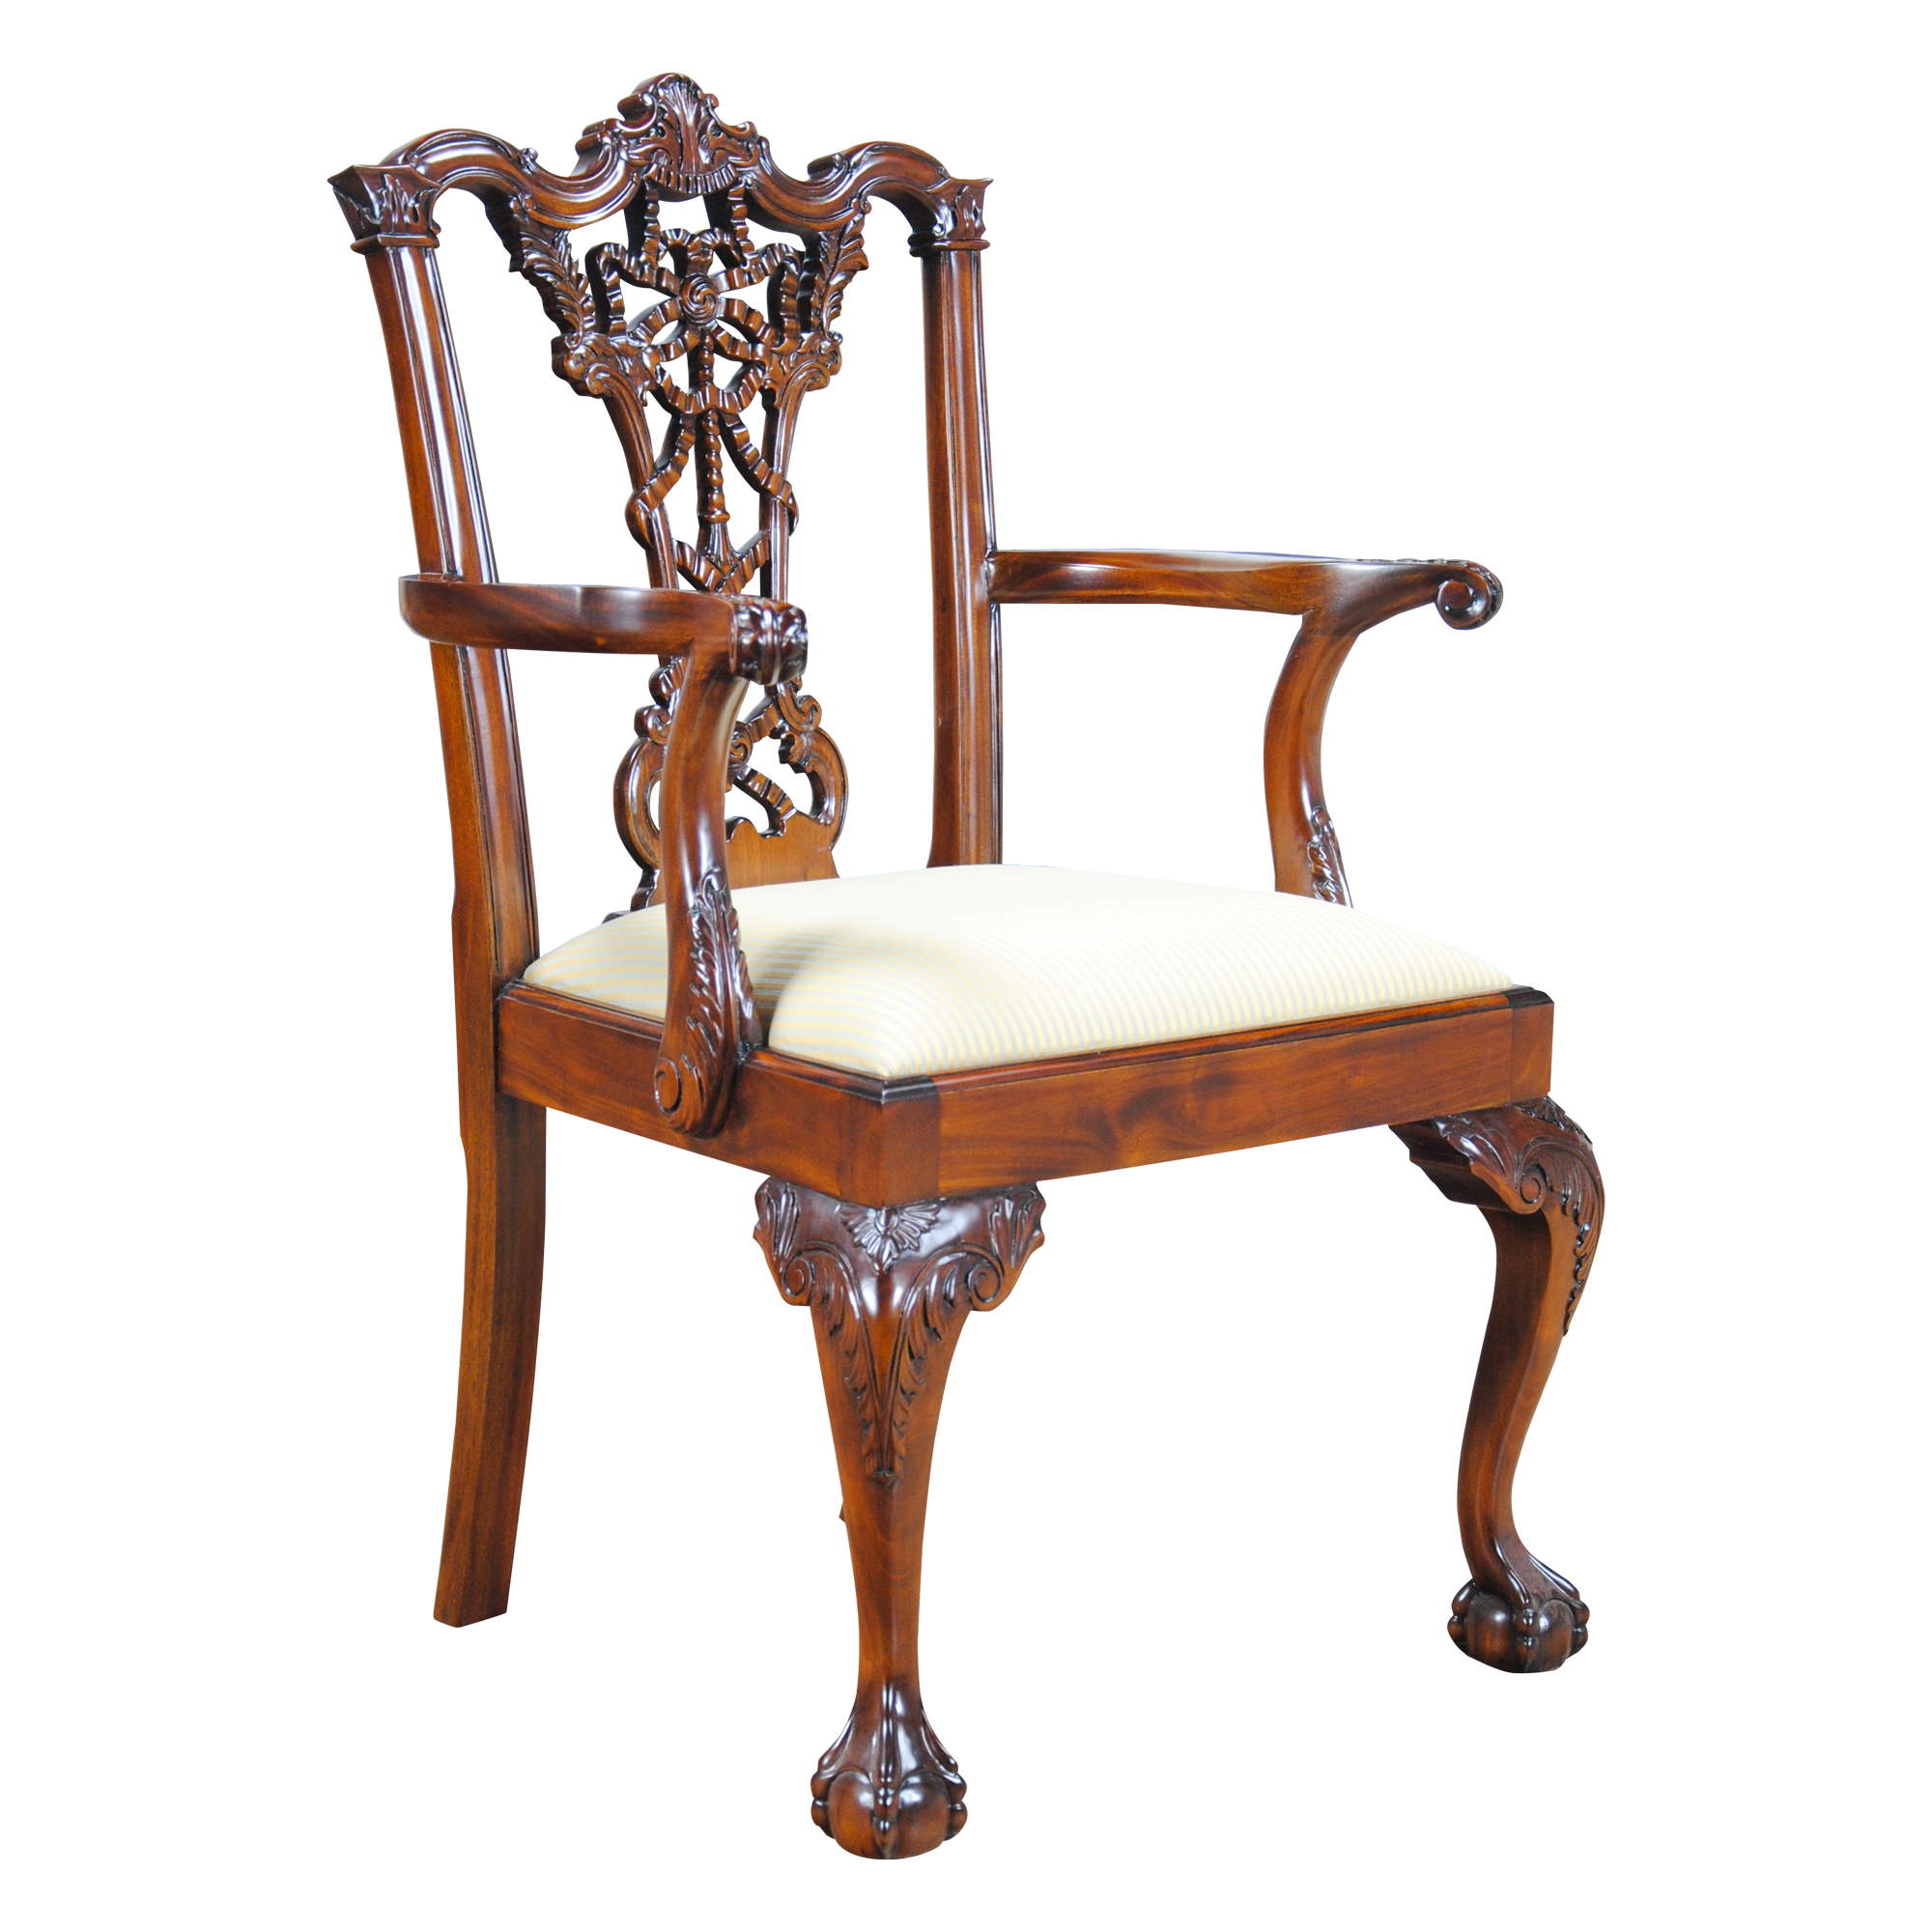 Chippendale Furniture: Carved Mahogany Chippendale Arm Chair, Niagara Furniture